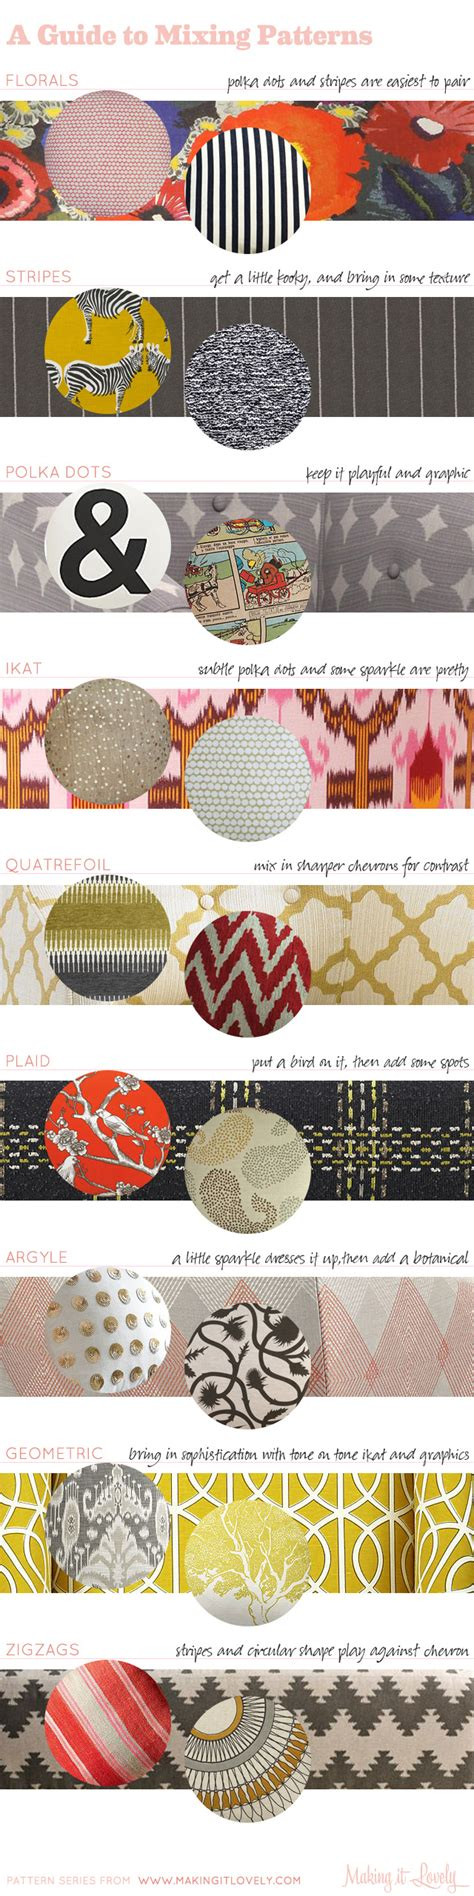 mixed patterns a guide to mixing patterns in your home making it lovely